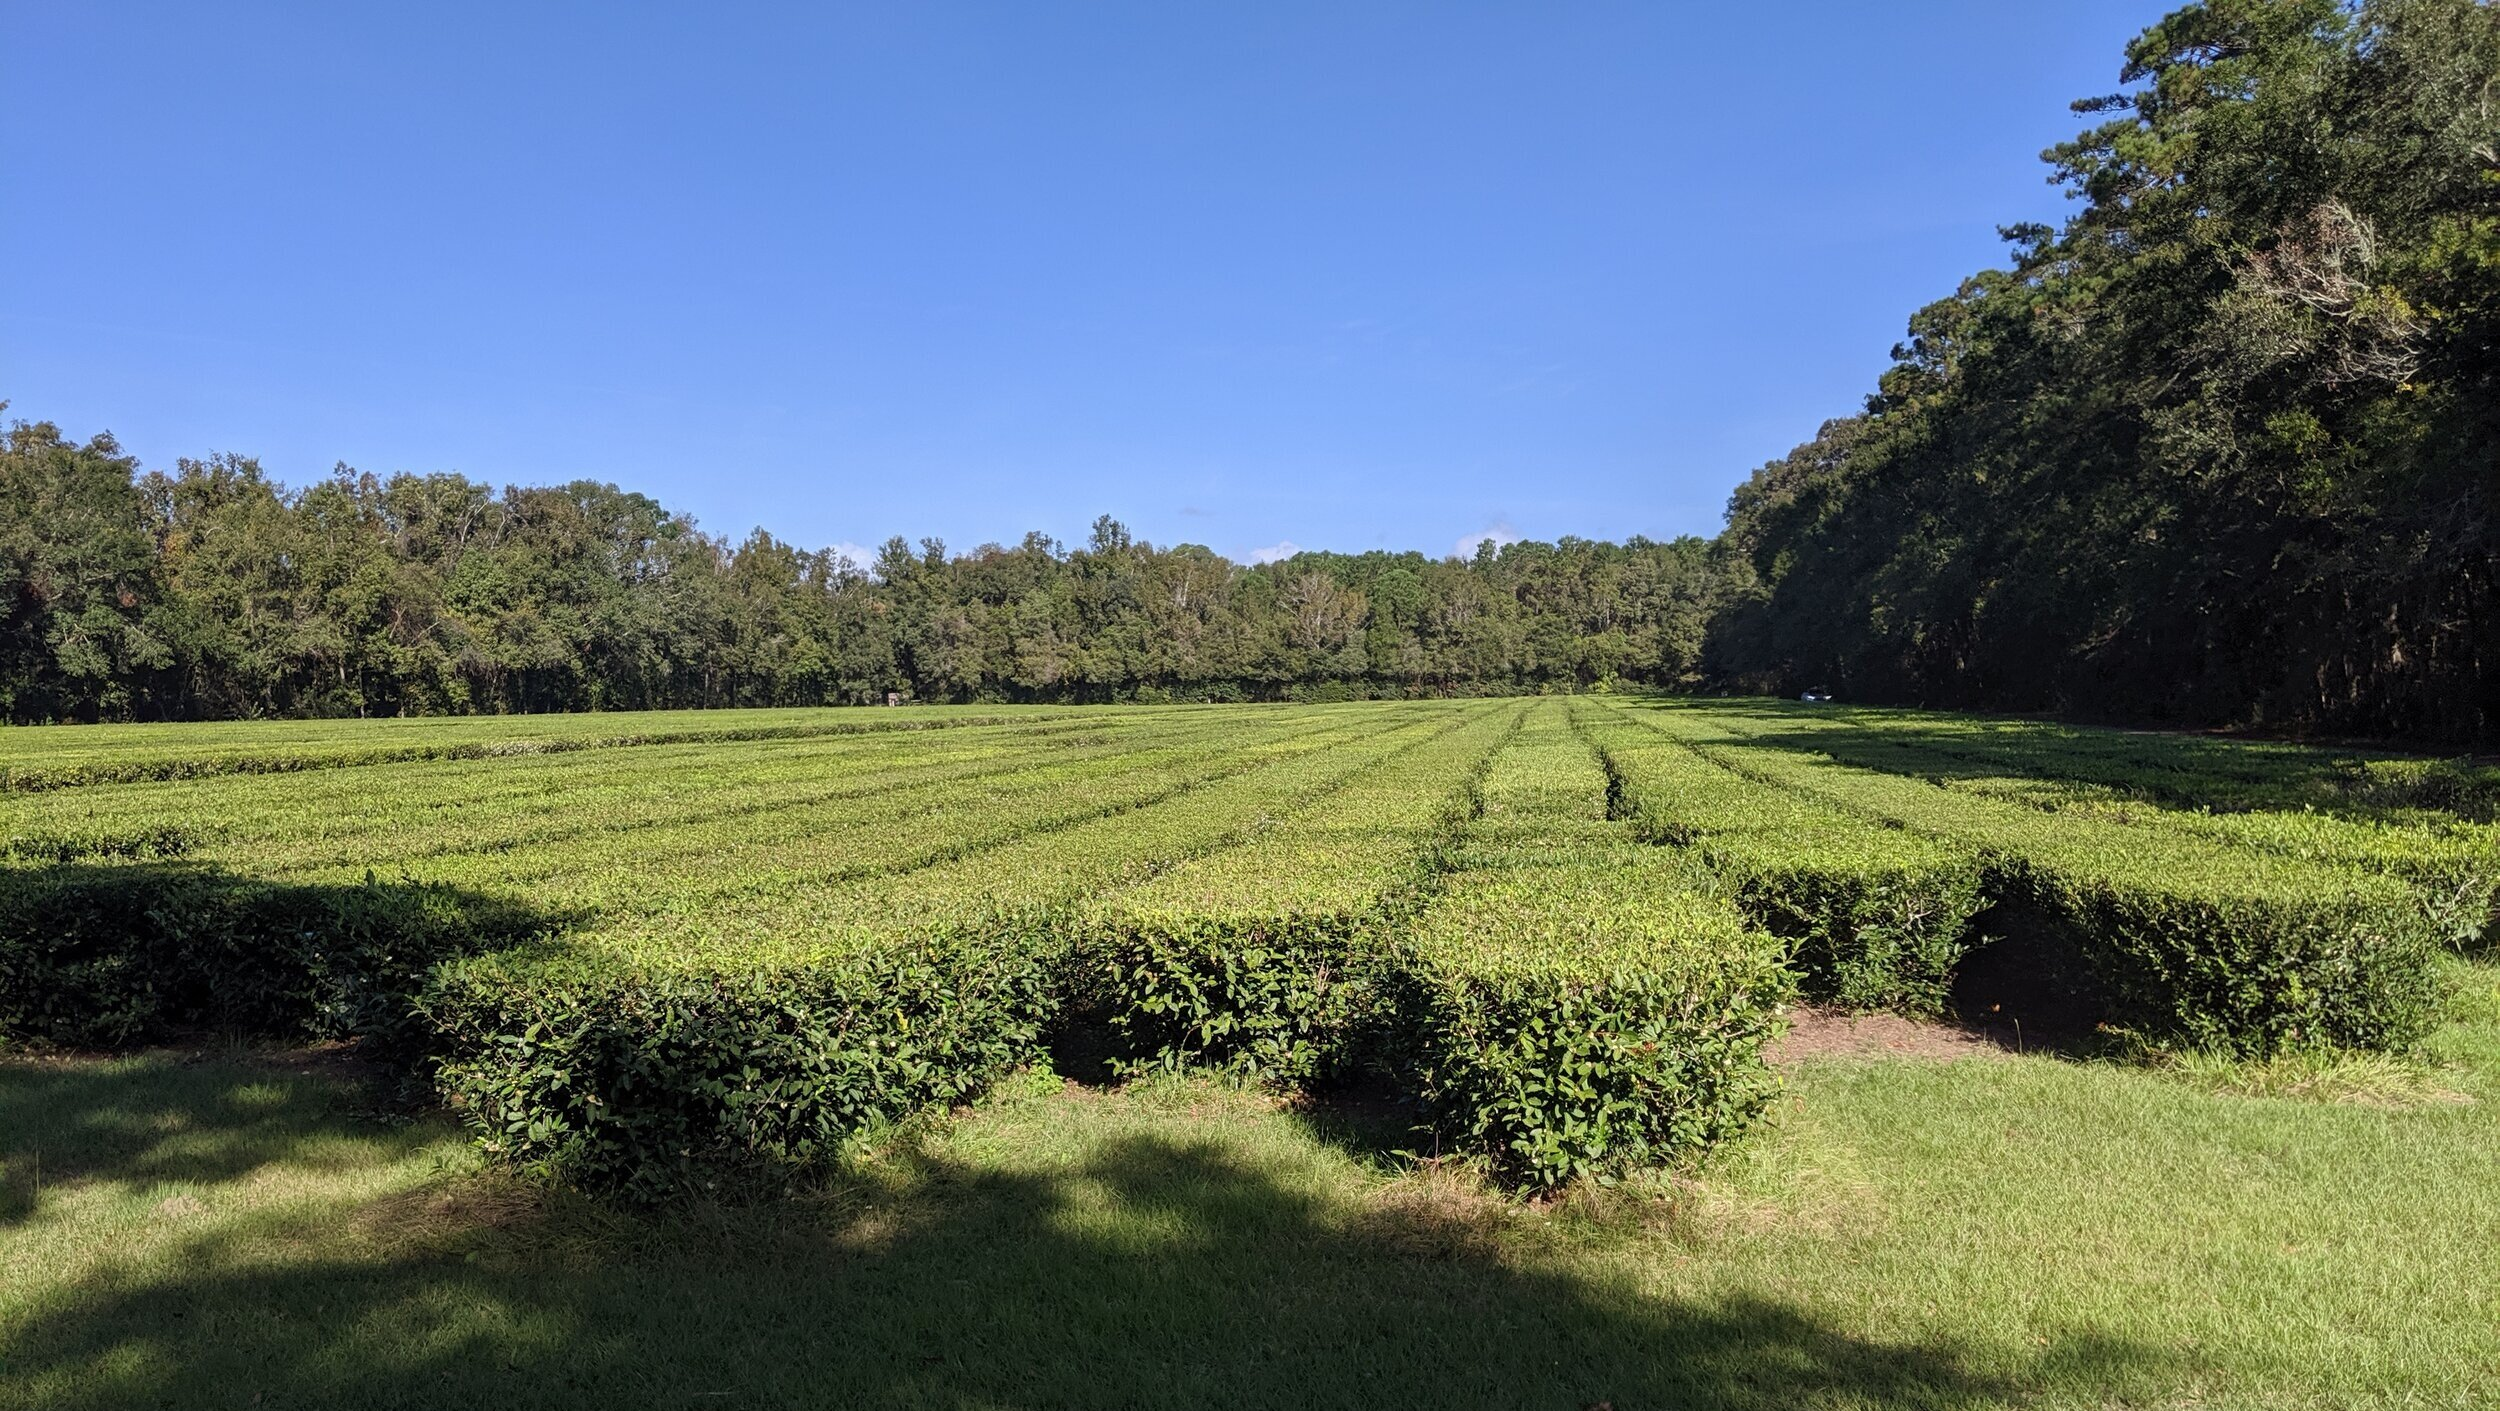 This is a field of tea plants. Half the year, 5-8 inches are trimmed are trimmed off the top every 21 days. The rest of the year they go dormant. These are ALL based on cuttings from China in the 1800's. The plants stay in place going forward—there are plants in Asia that are 600+ years old.